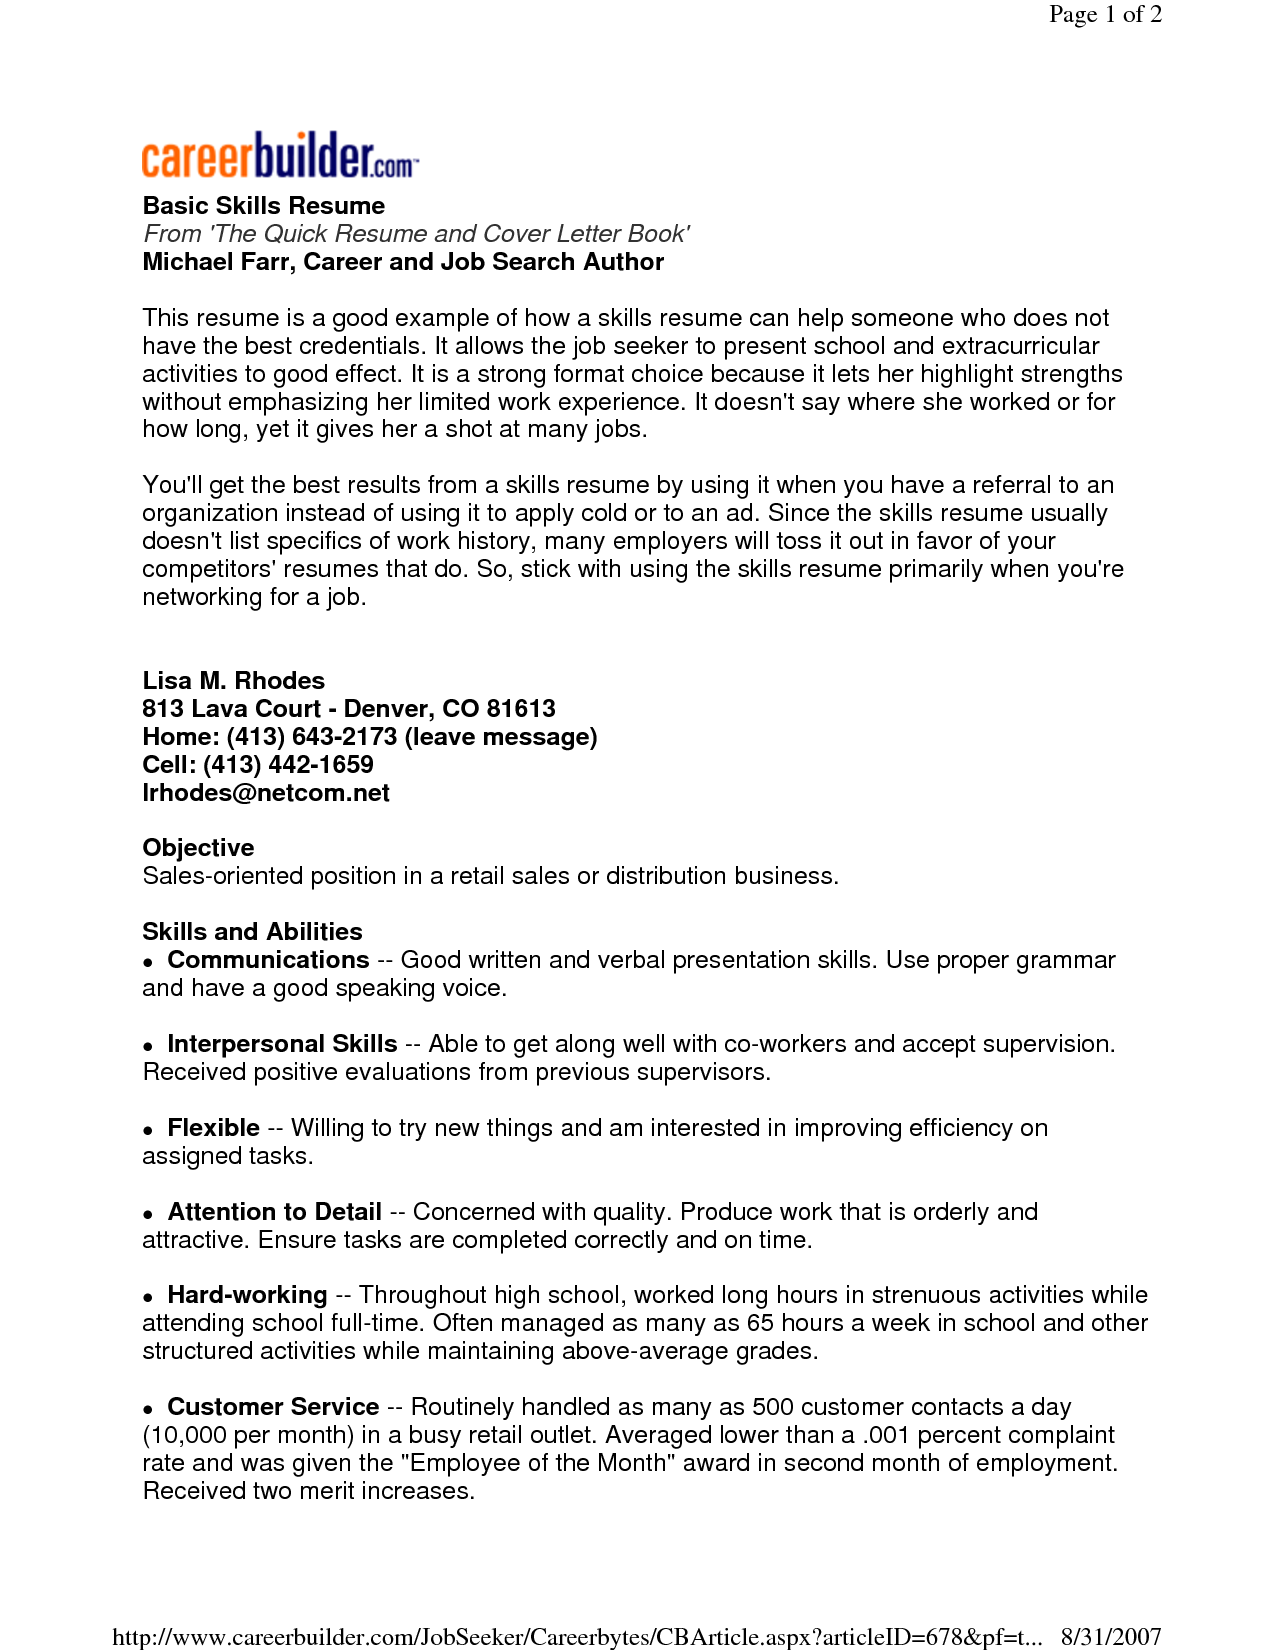 resume examples career focus profile find here the sample resume that best fits your profile order